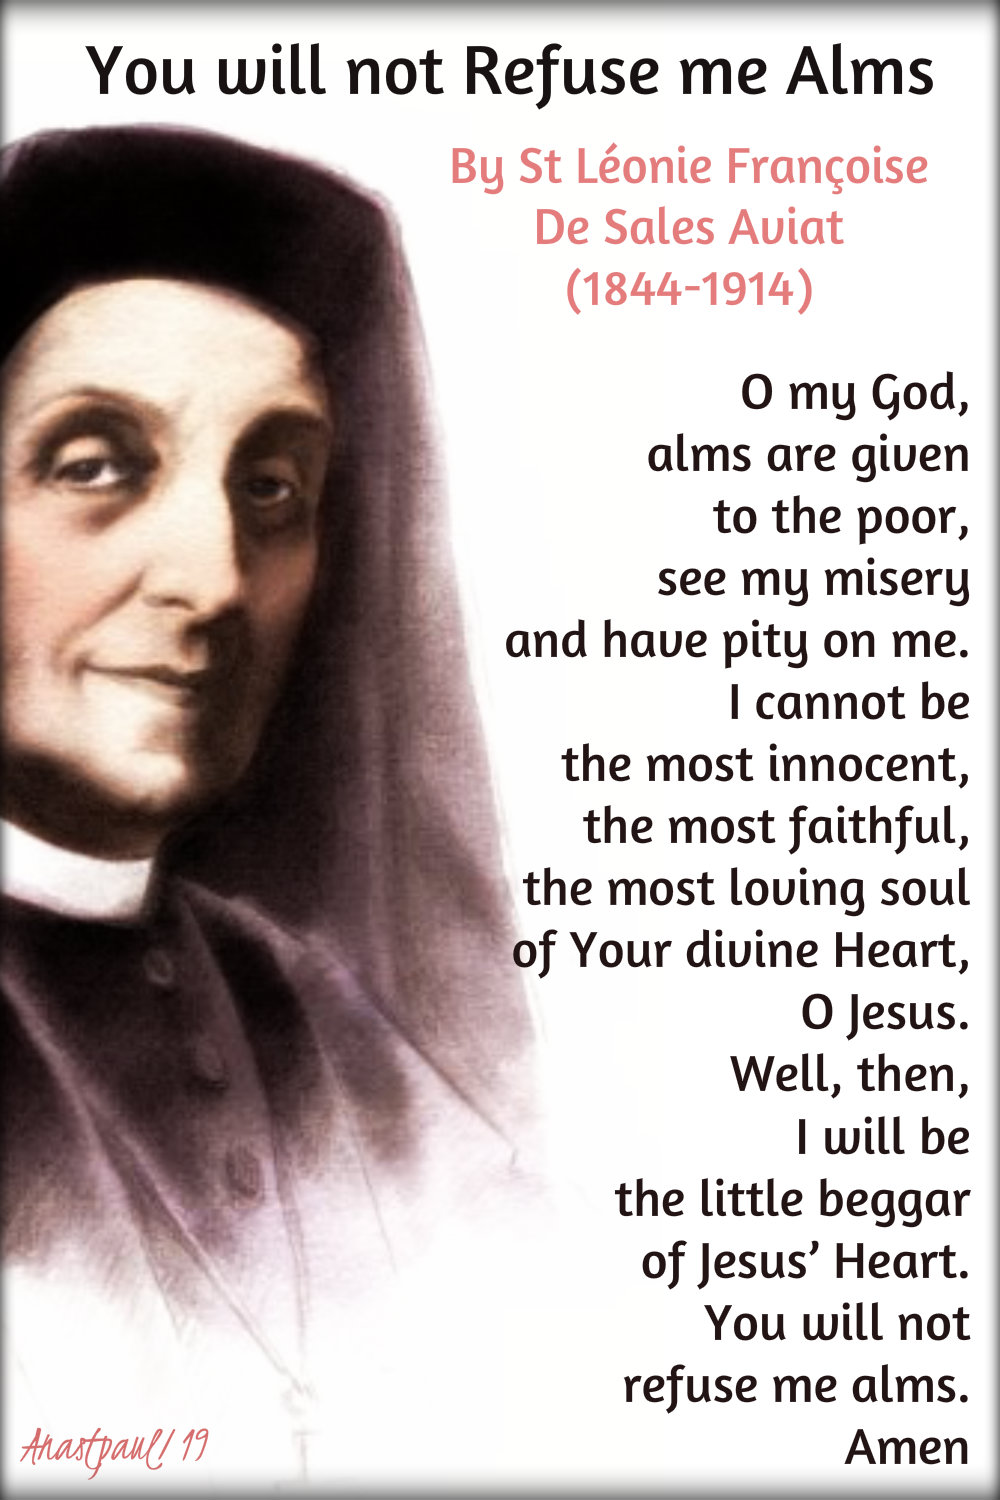 you will not refuse me alms - st leonie aviat 10 jan 2019